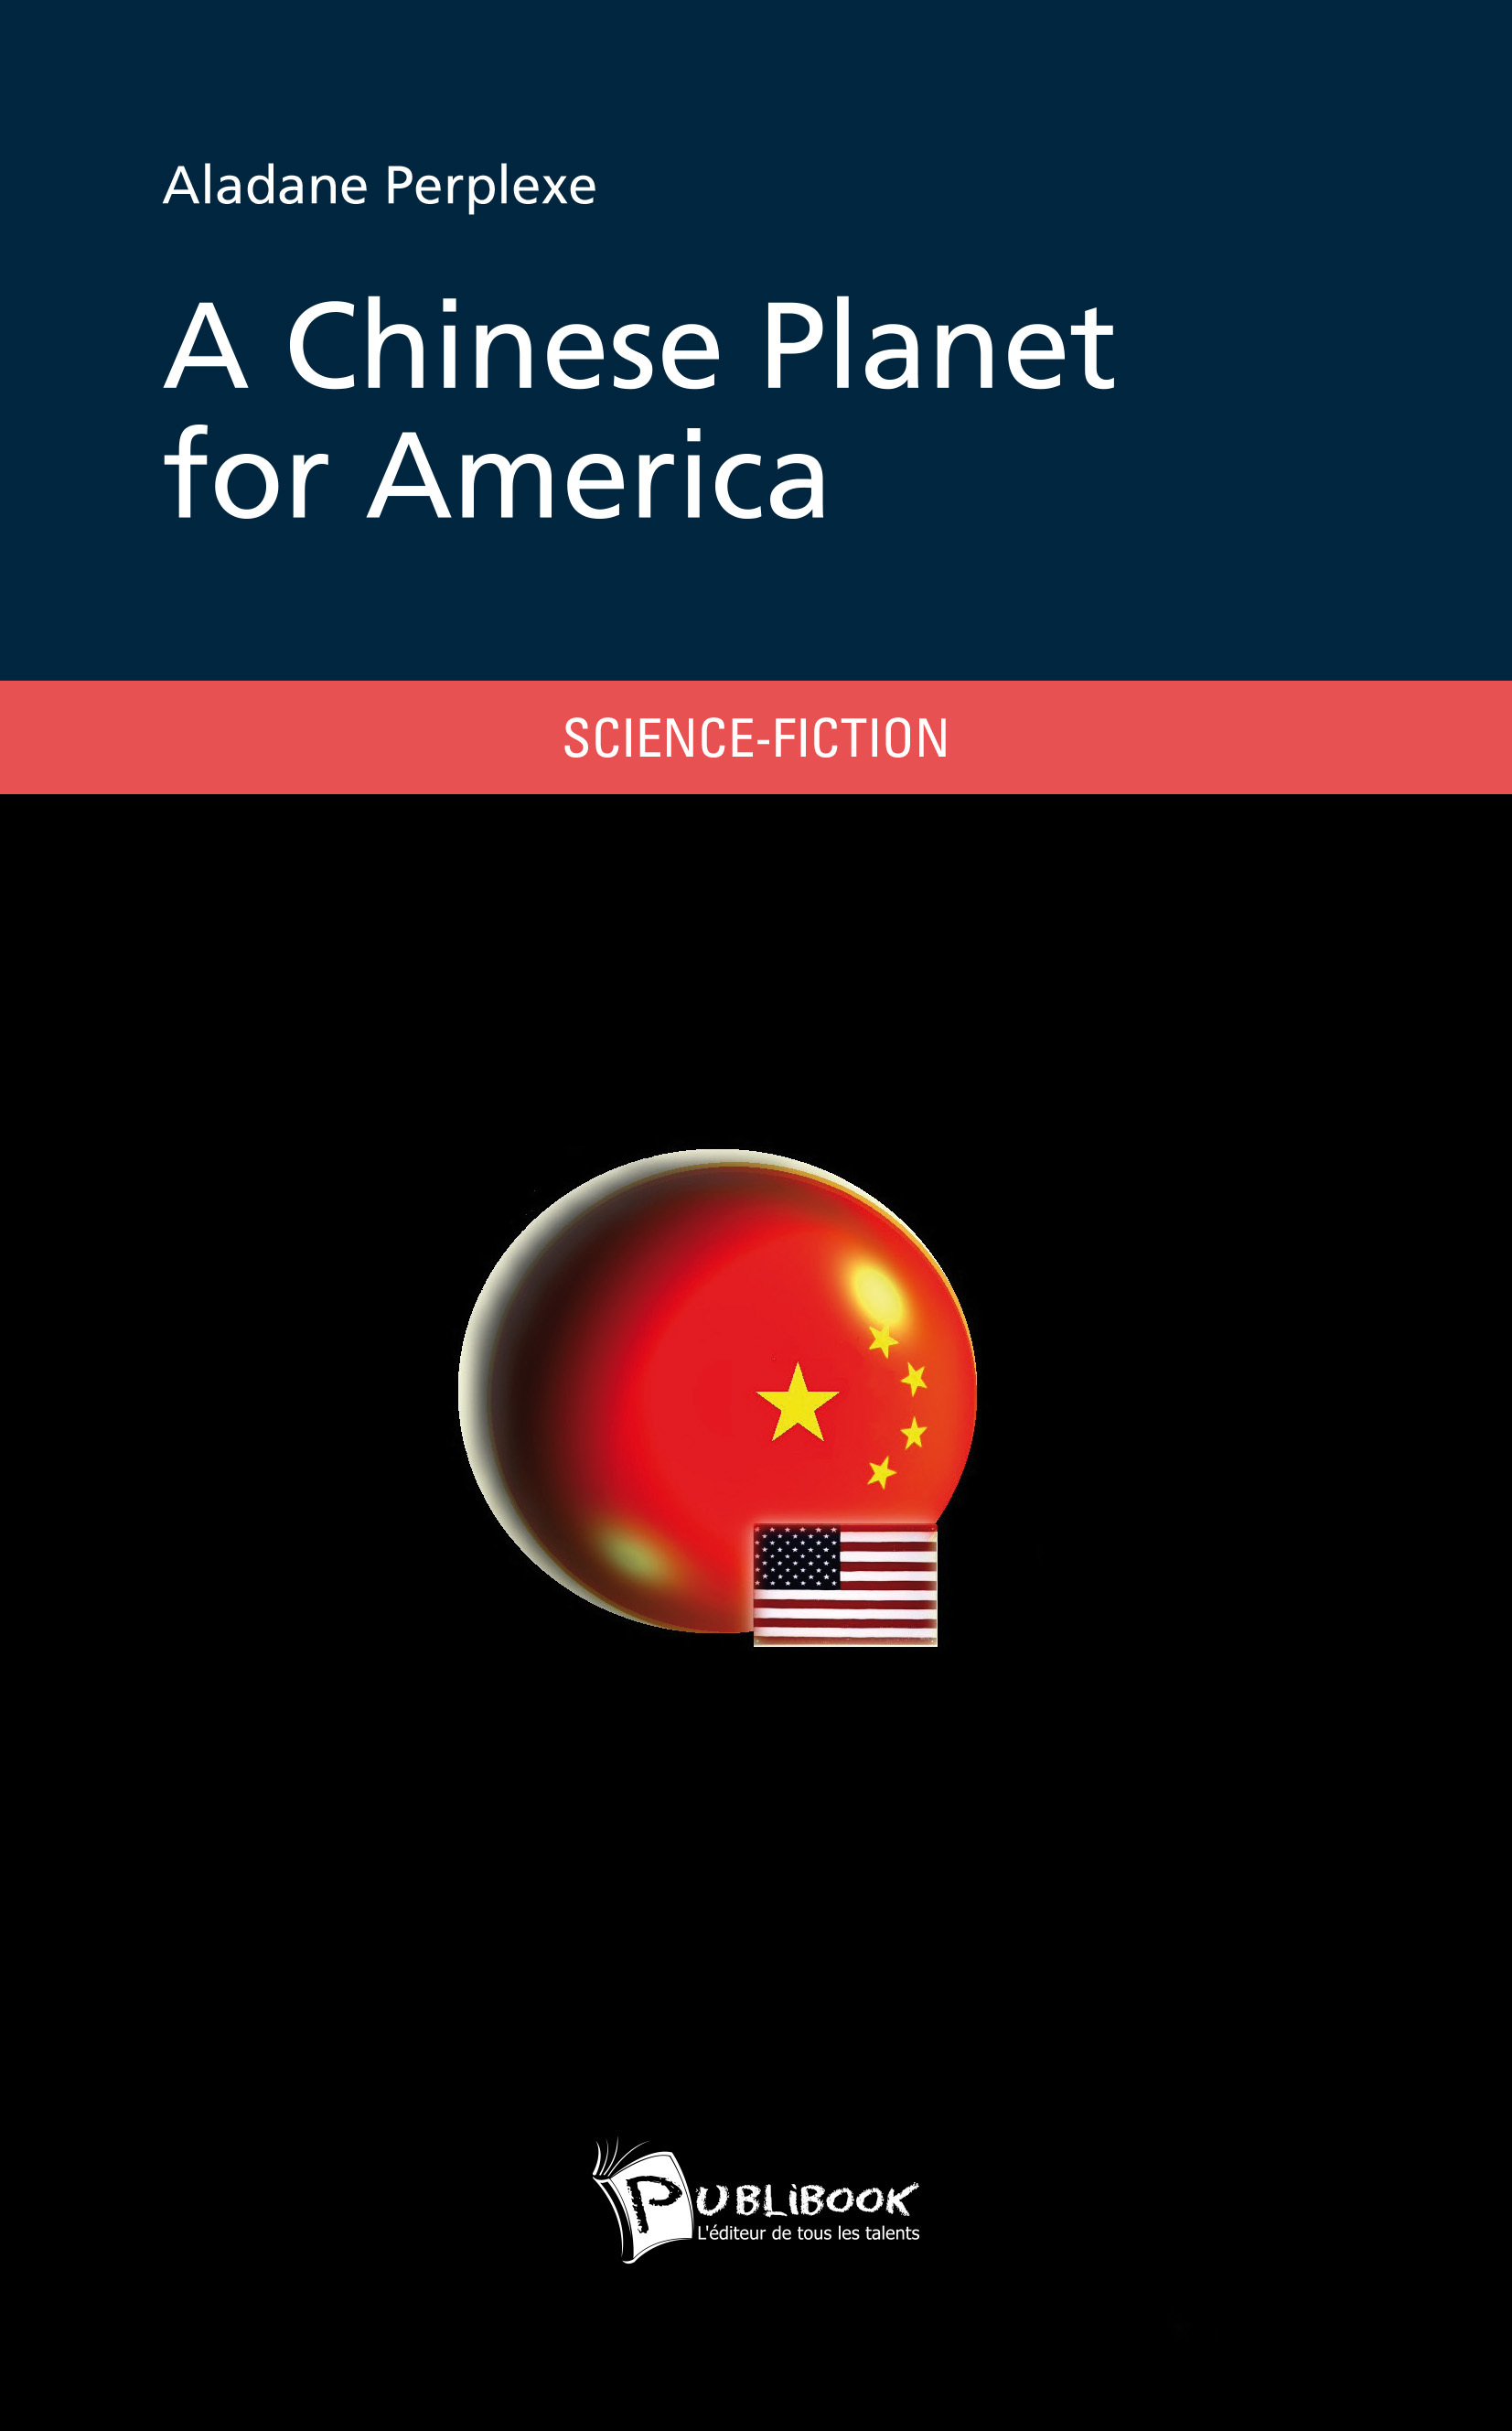 A CHINESE PLANET FOR AMERICA